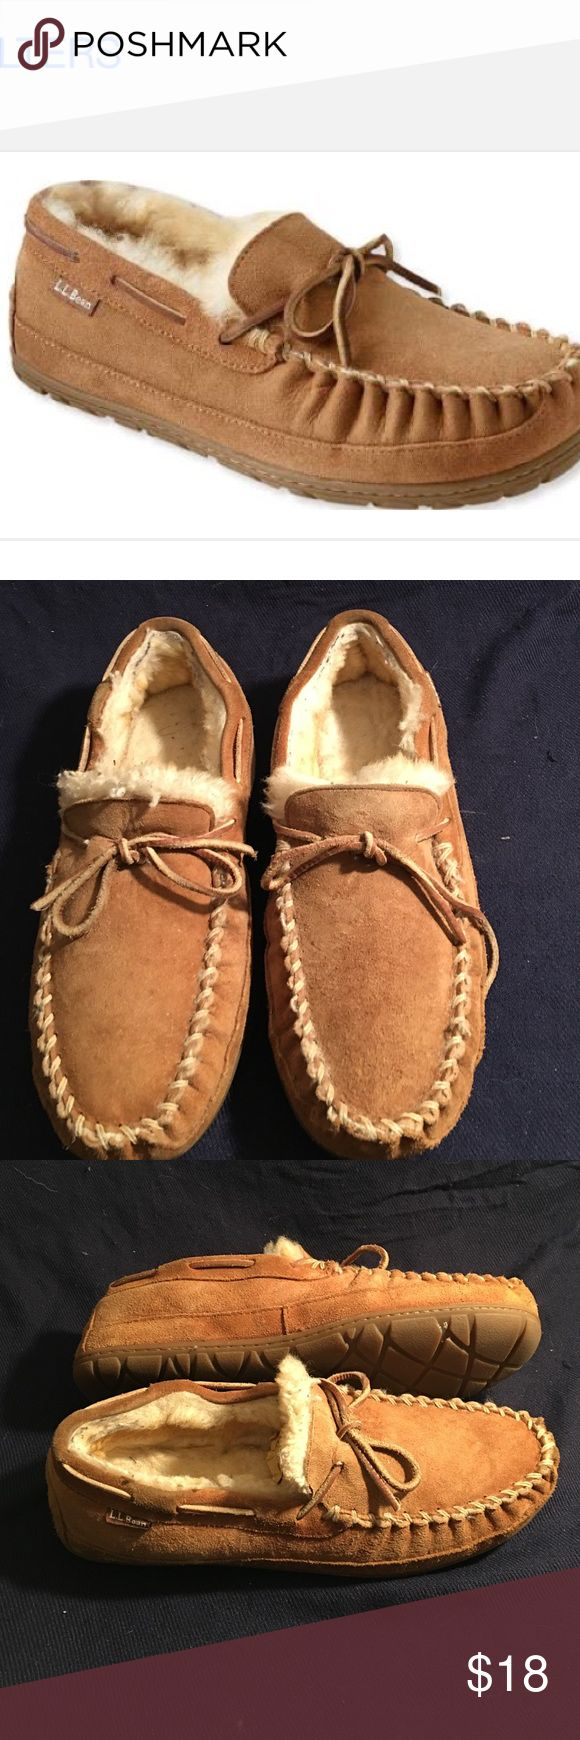 LL BEAN MENS MOCCASINS SHEEPSKIN L/new SIZE 10M LL BEAN SHEEPSKIN MOCCASINS IN NEW CONDITION. THEY STILL HAVE THE PAPER  INSERTS  SIZE 10 M LL BEAN Shoes Loafers & Slip-Ons